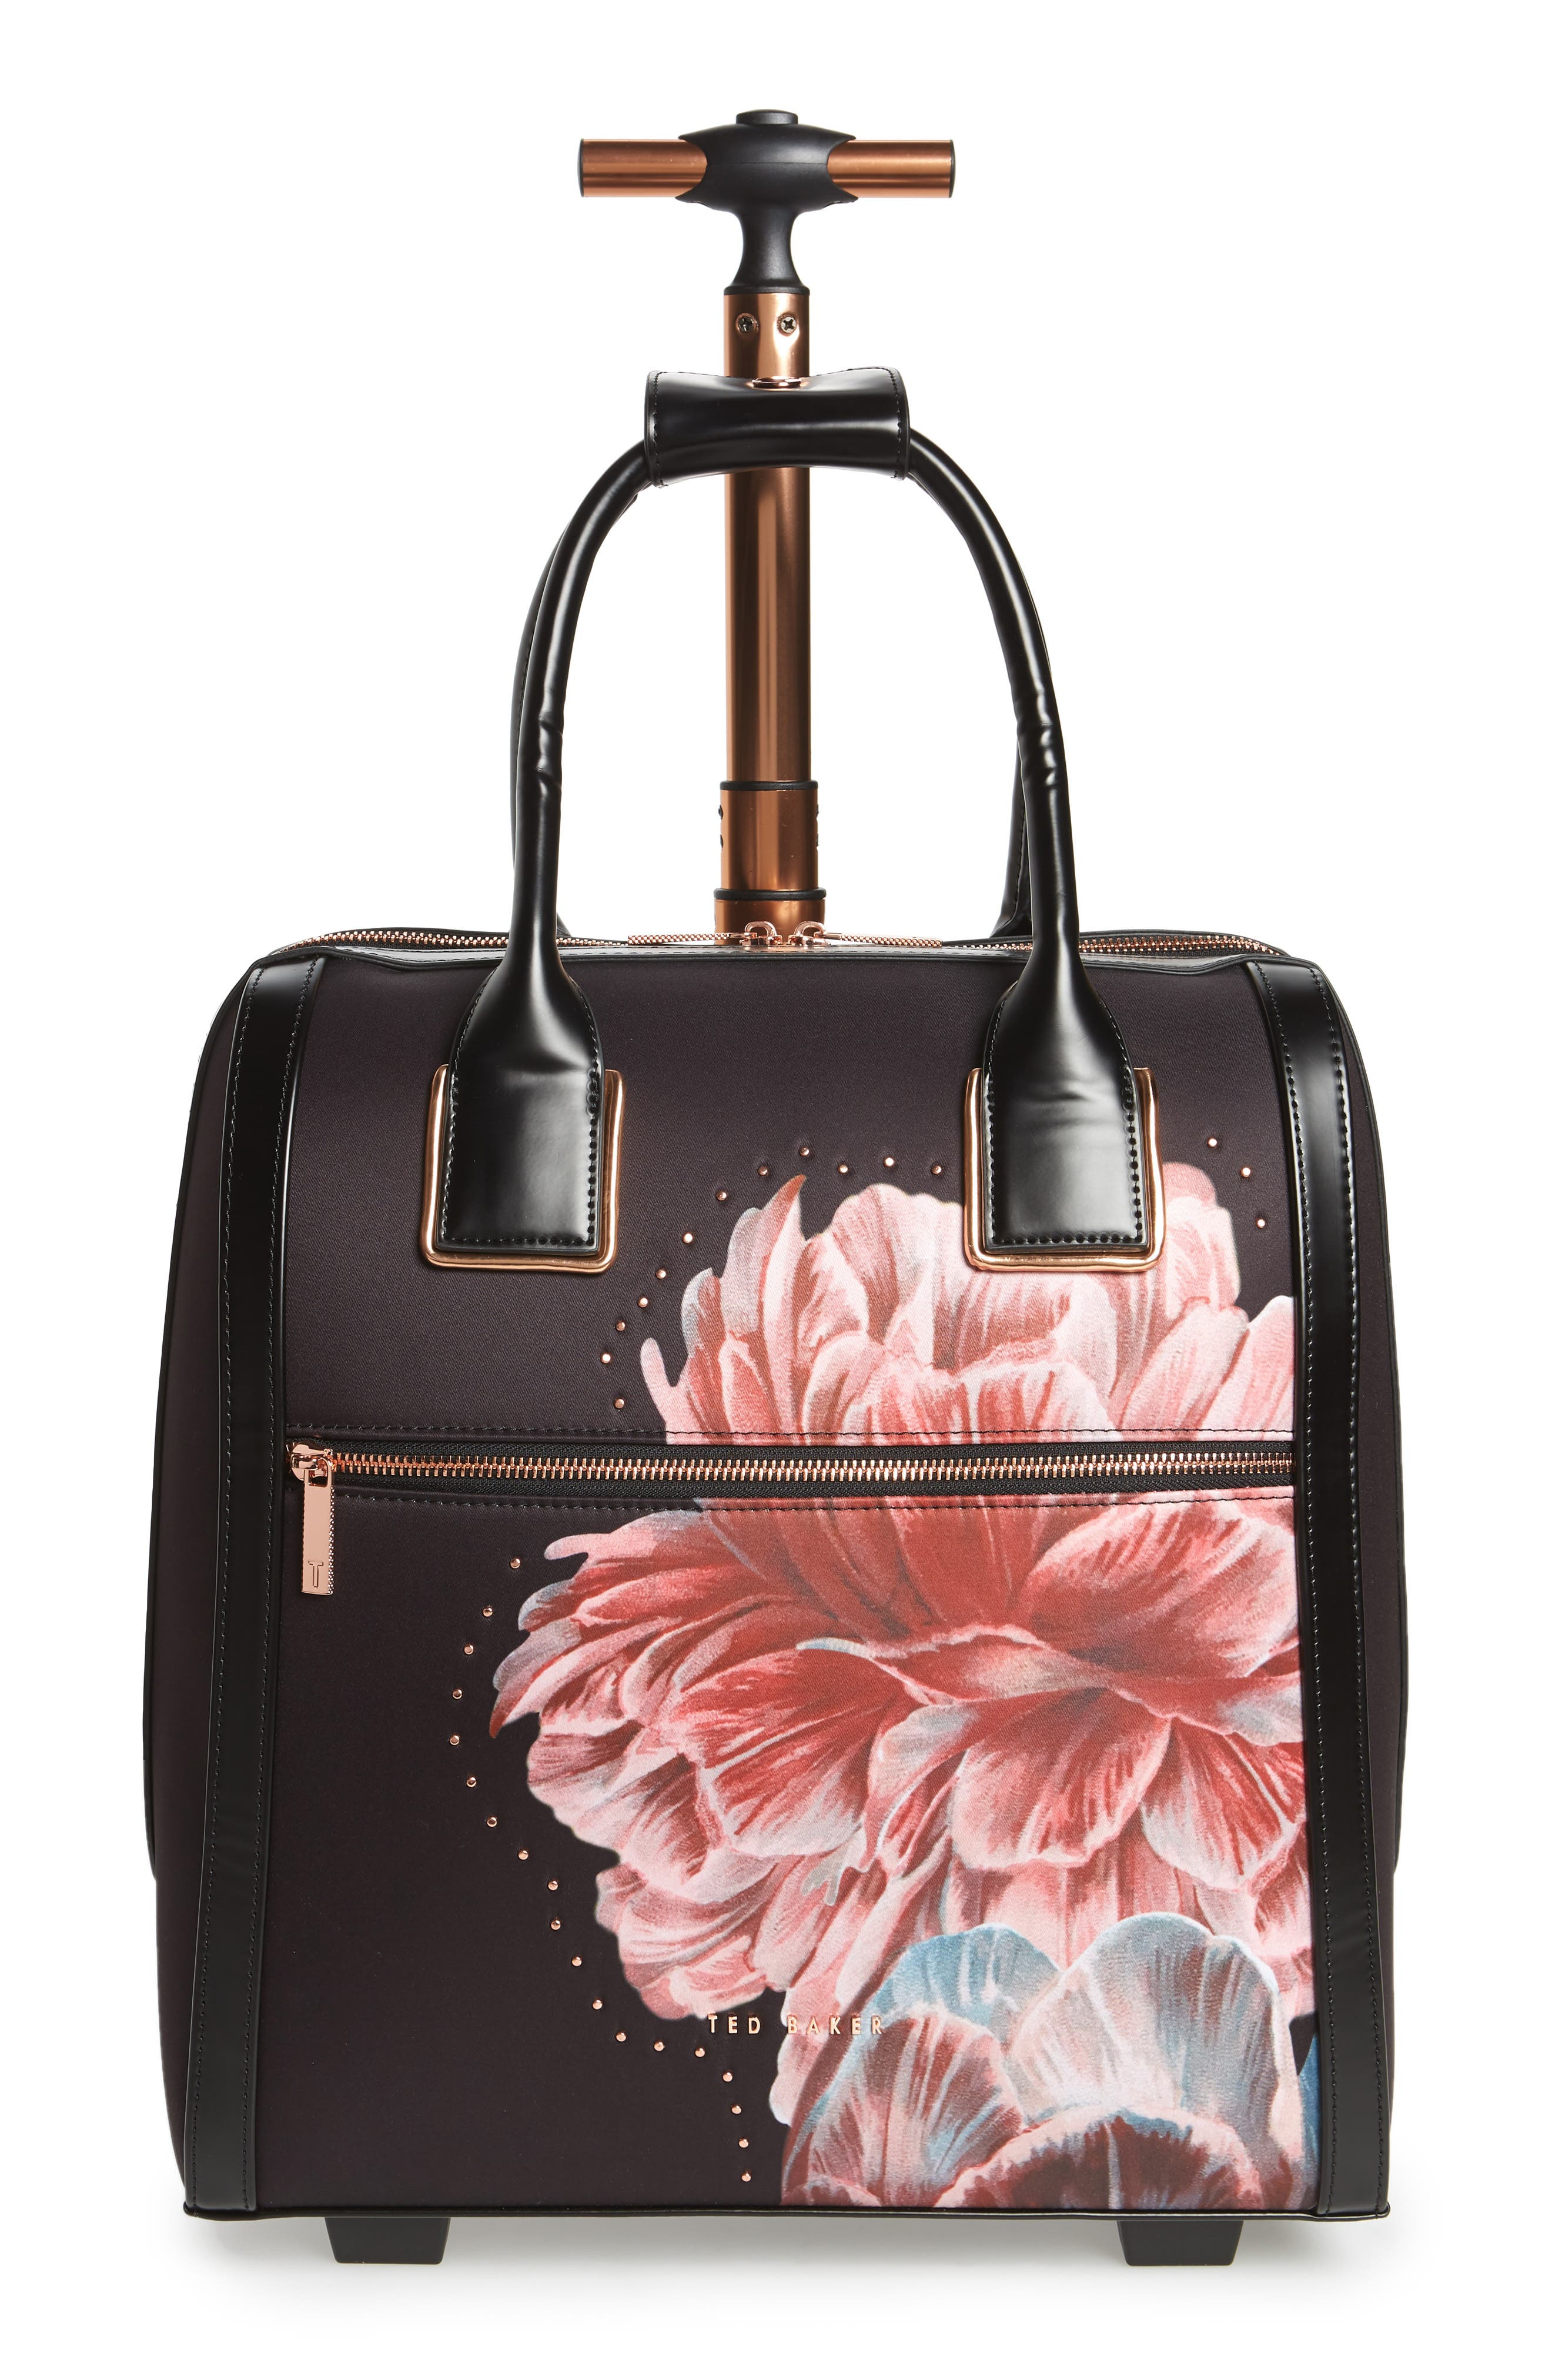 Tranquility Rolling Faux Leather Travel Bag,                             Main thumbnail 1, color,                             001